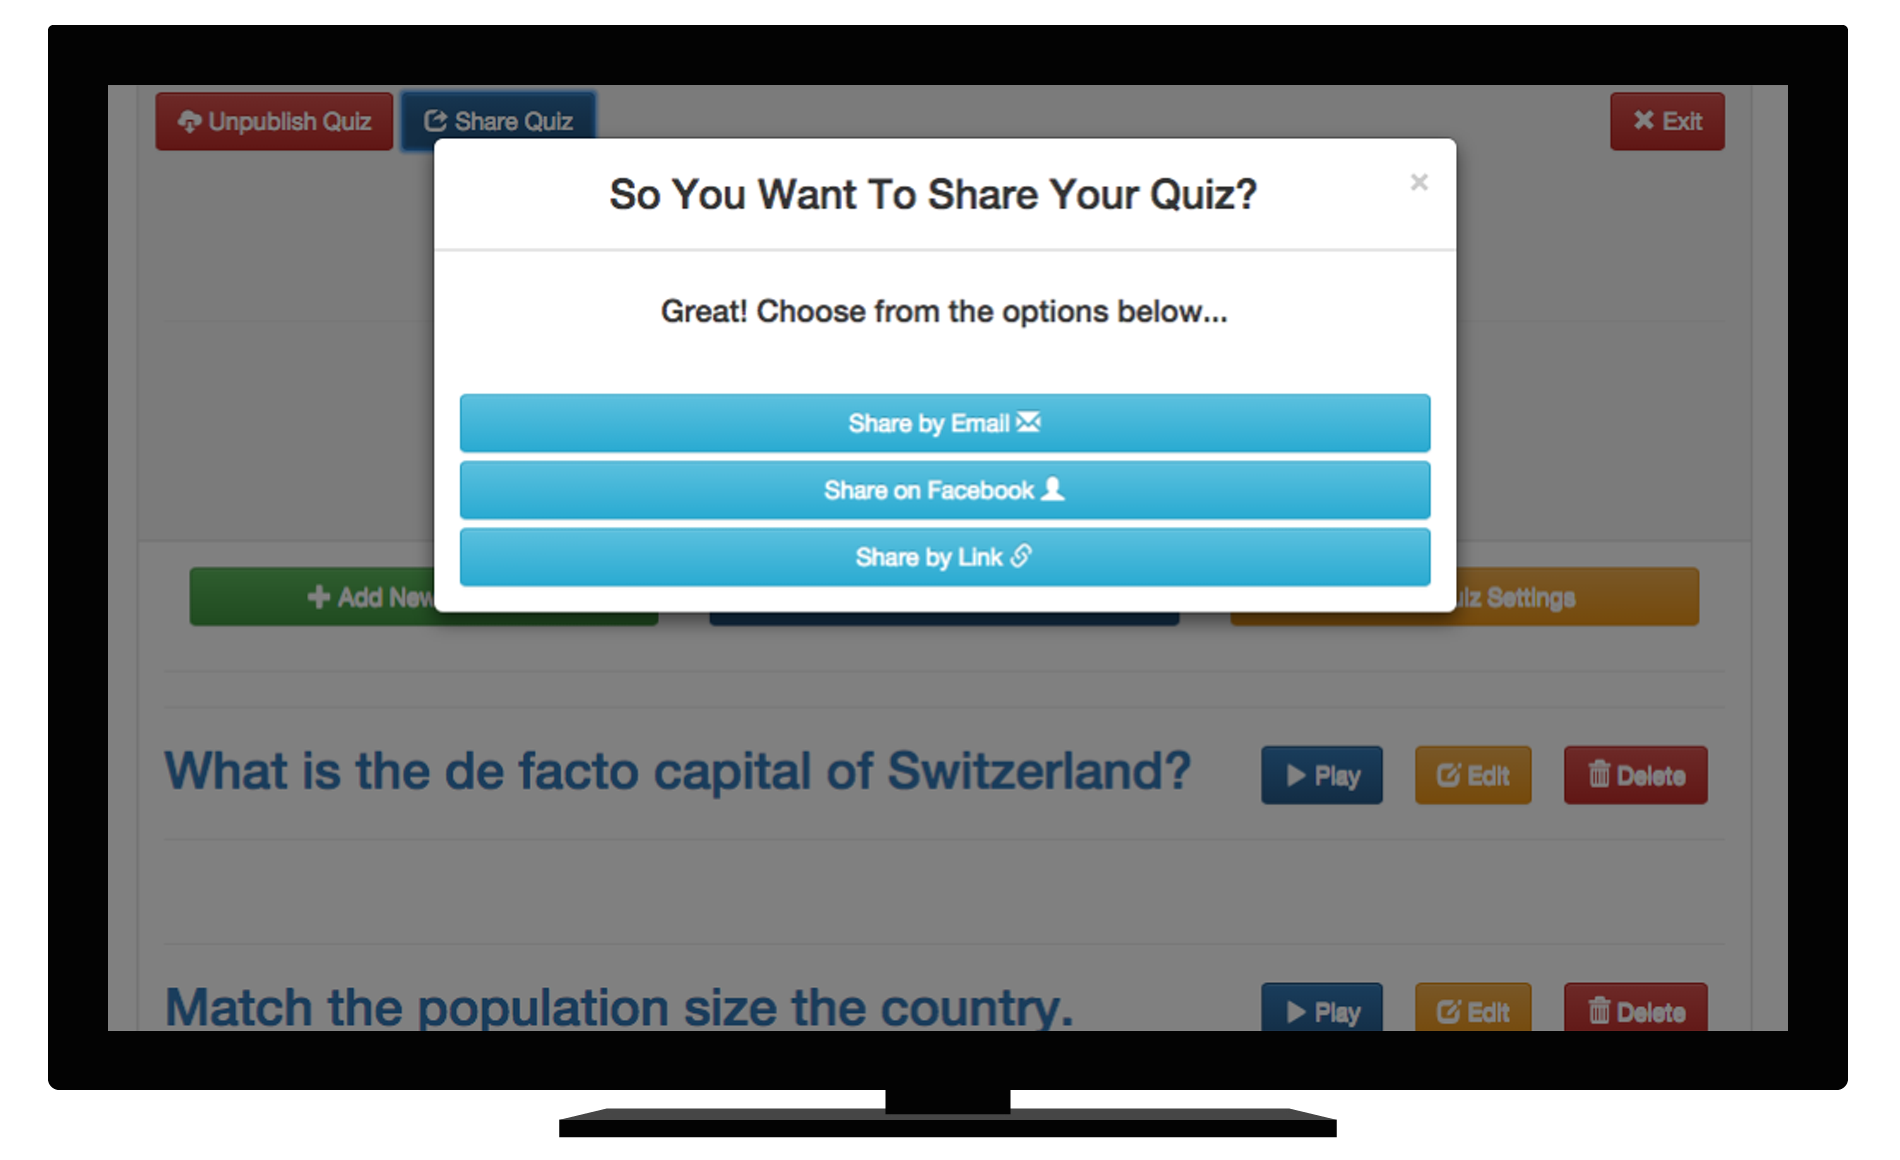 Screenshot of sharing a quiz online